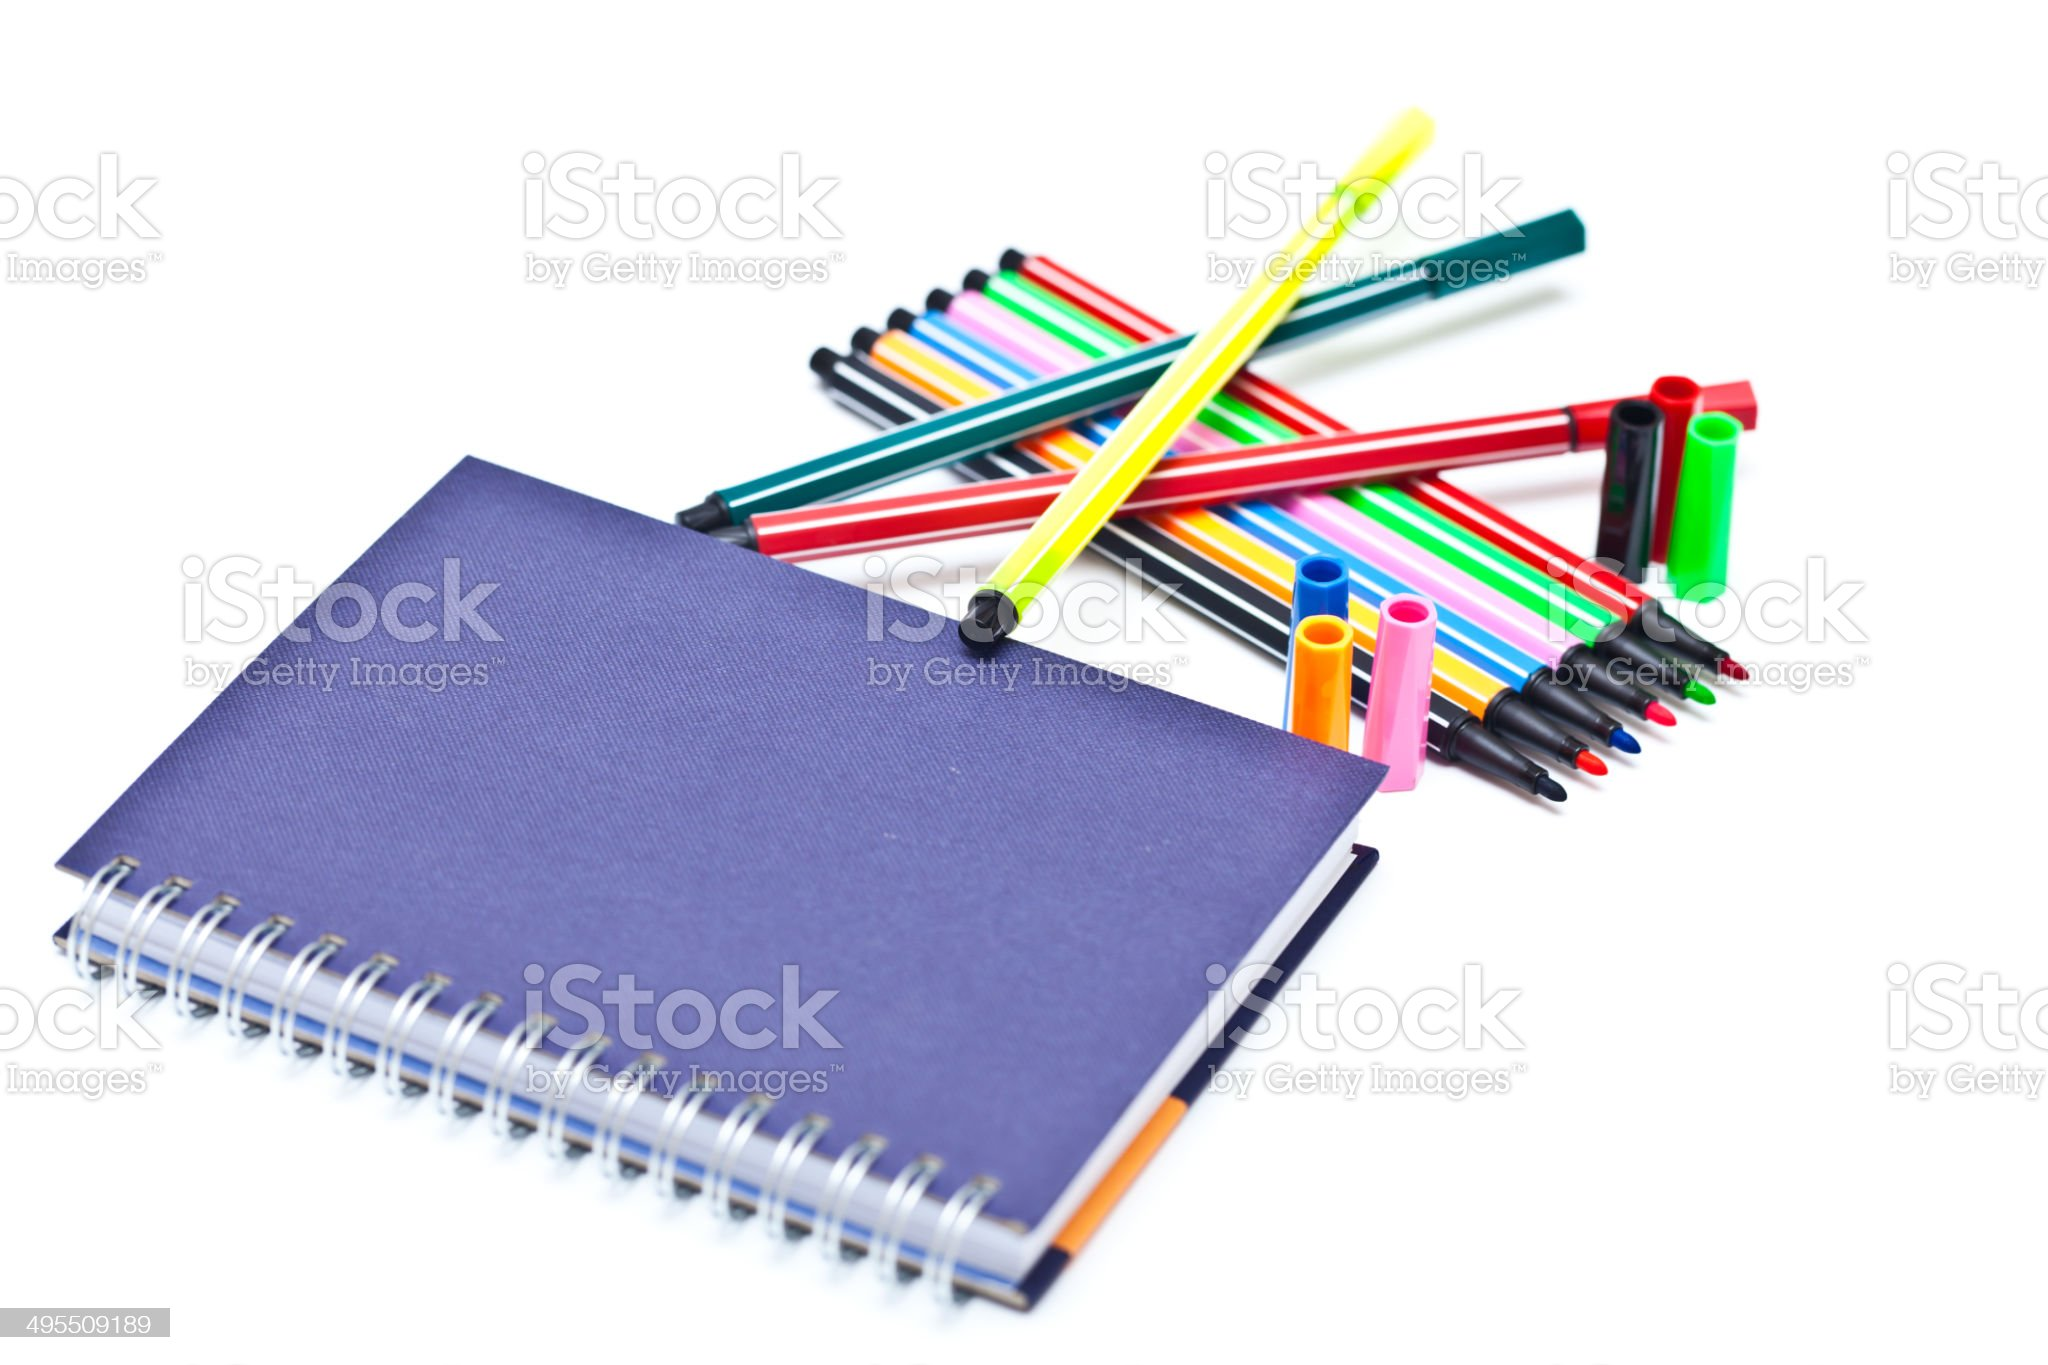 Books and colorful pens royalty-free stock photo